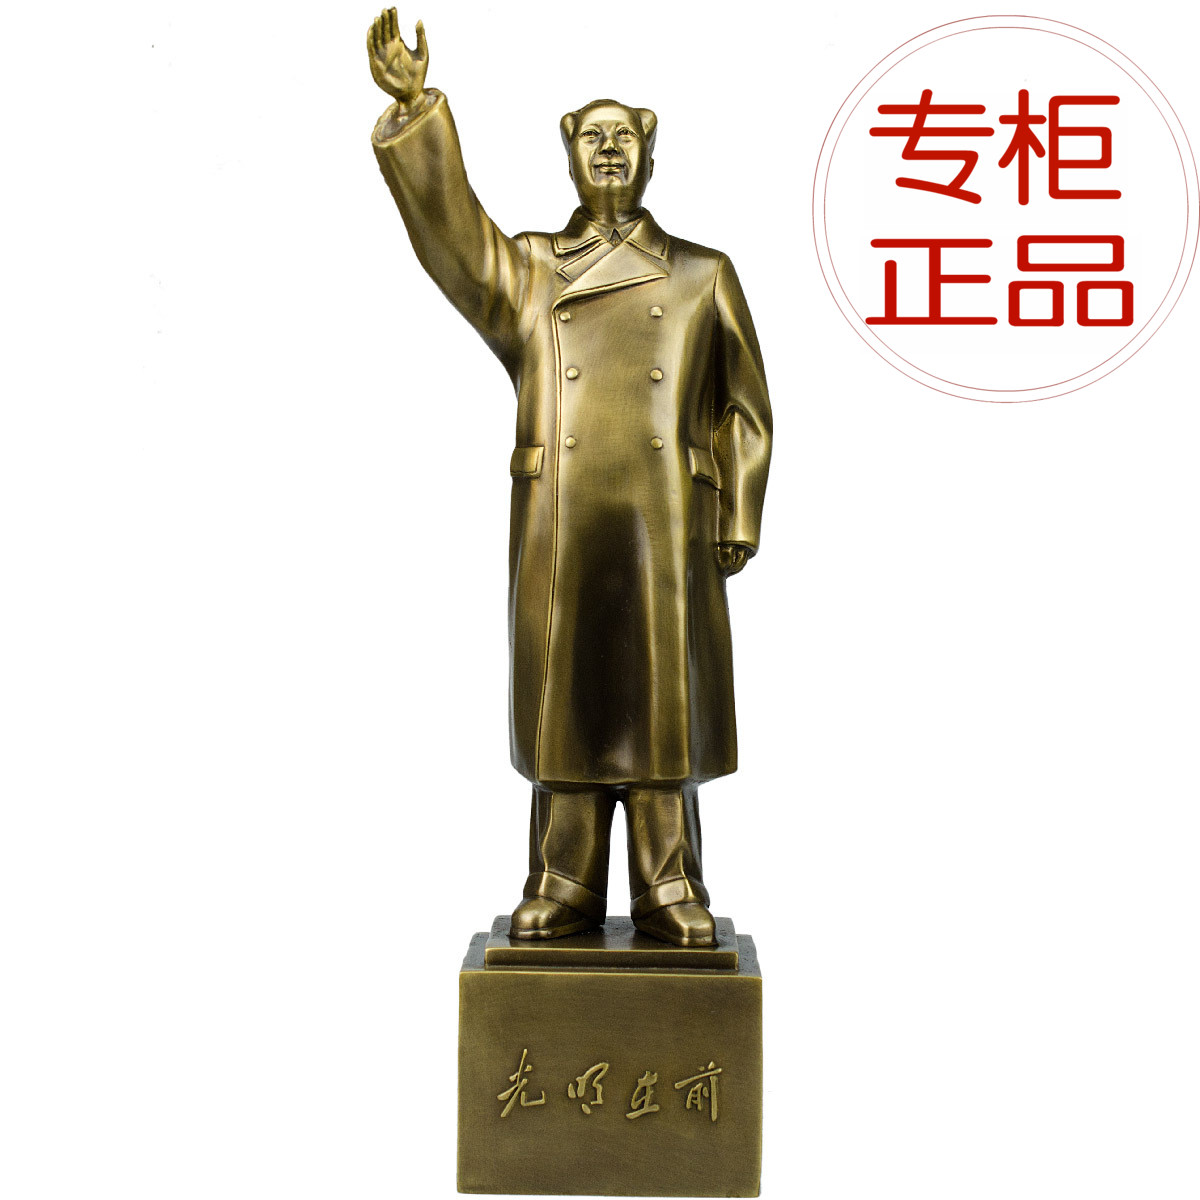 Chairman Mao Zedong waves all over his body